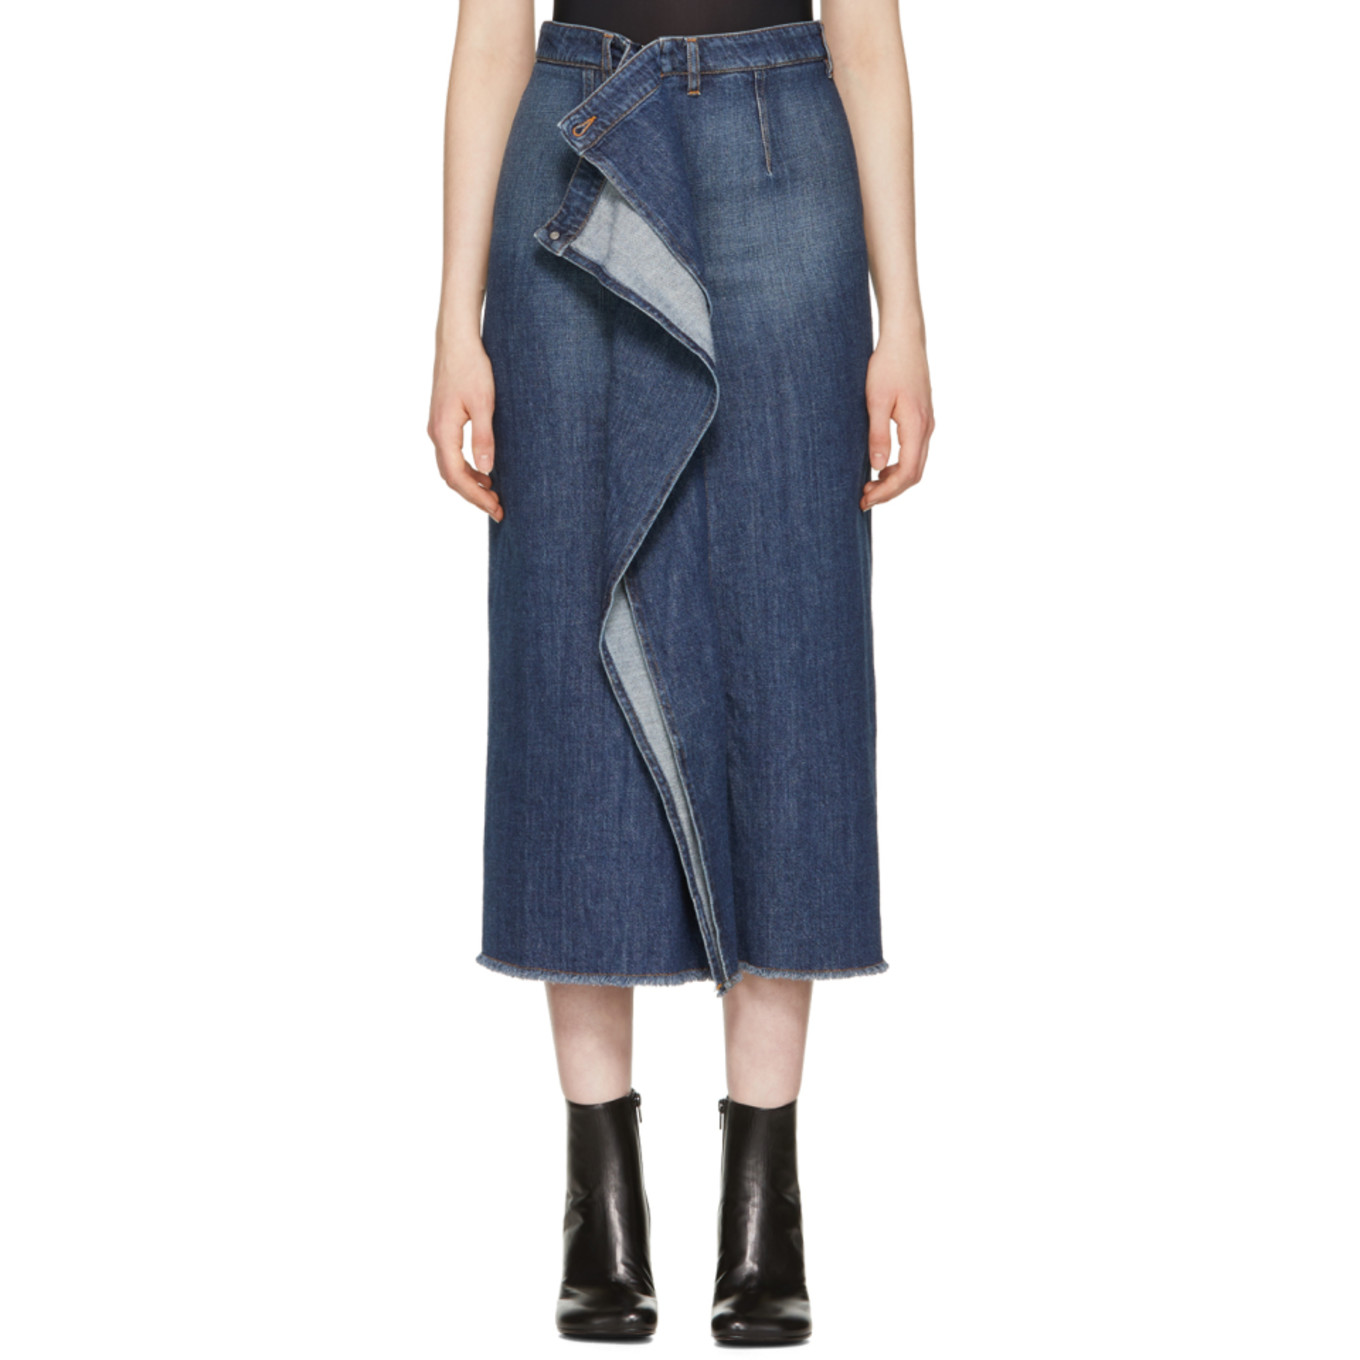 Blue 80's Wash Denim Skirt by Mm6 Maison Martin Margiela